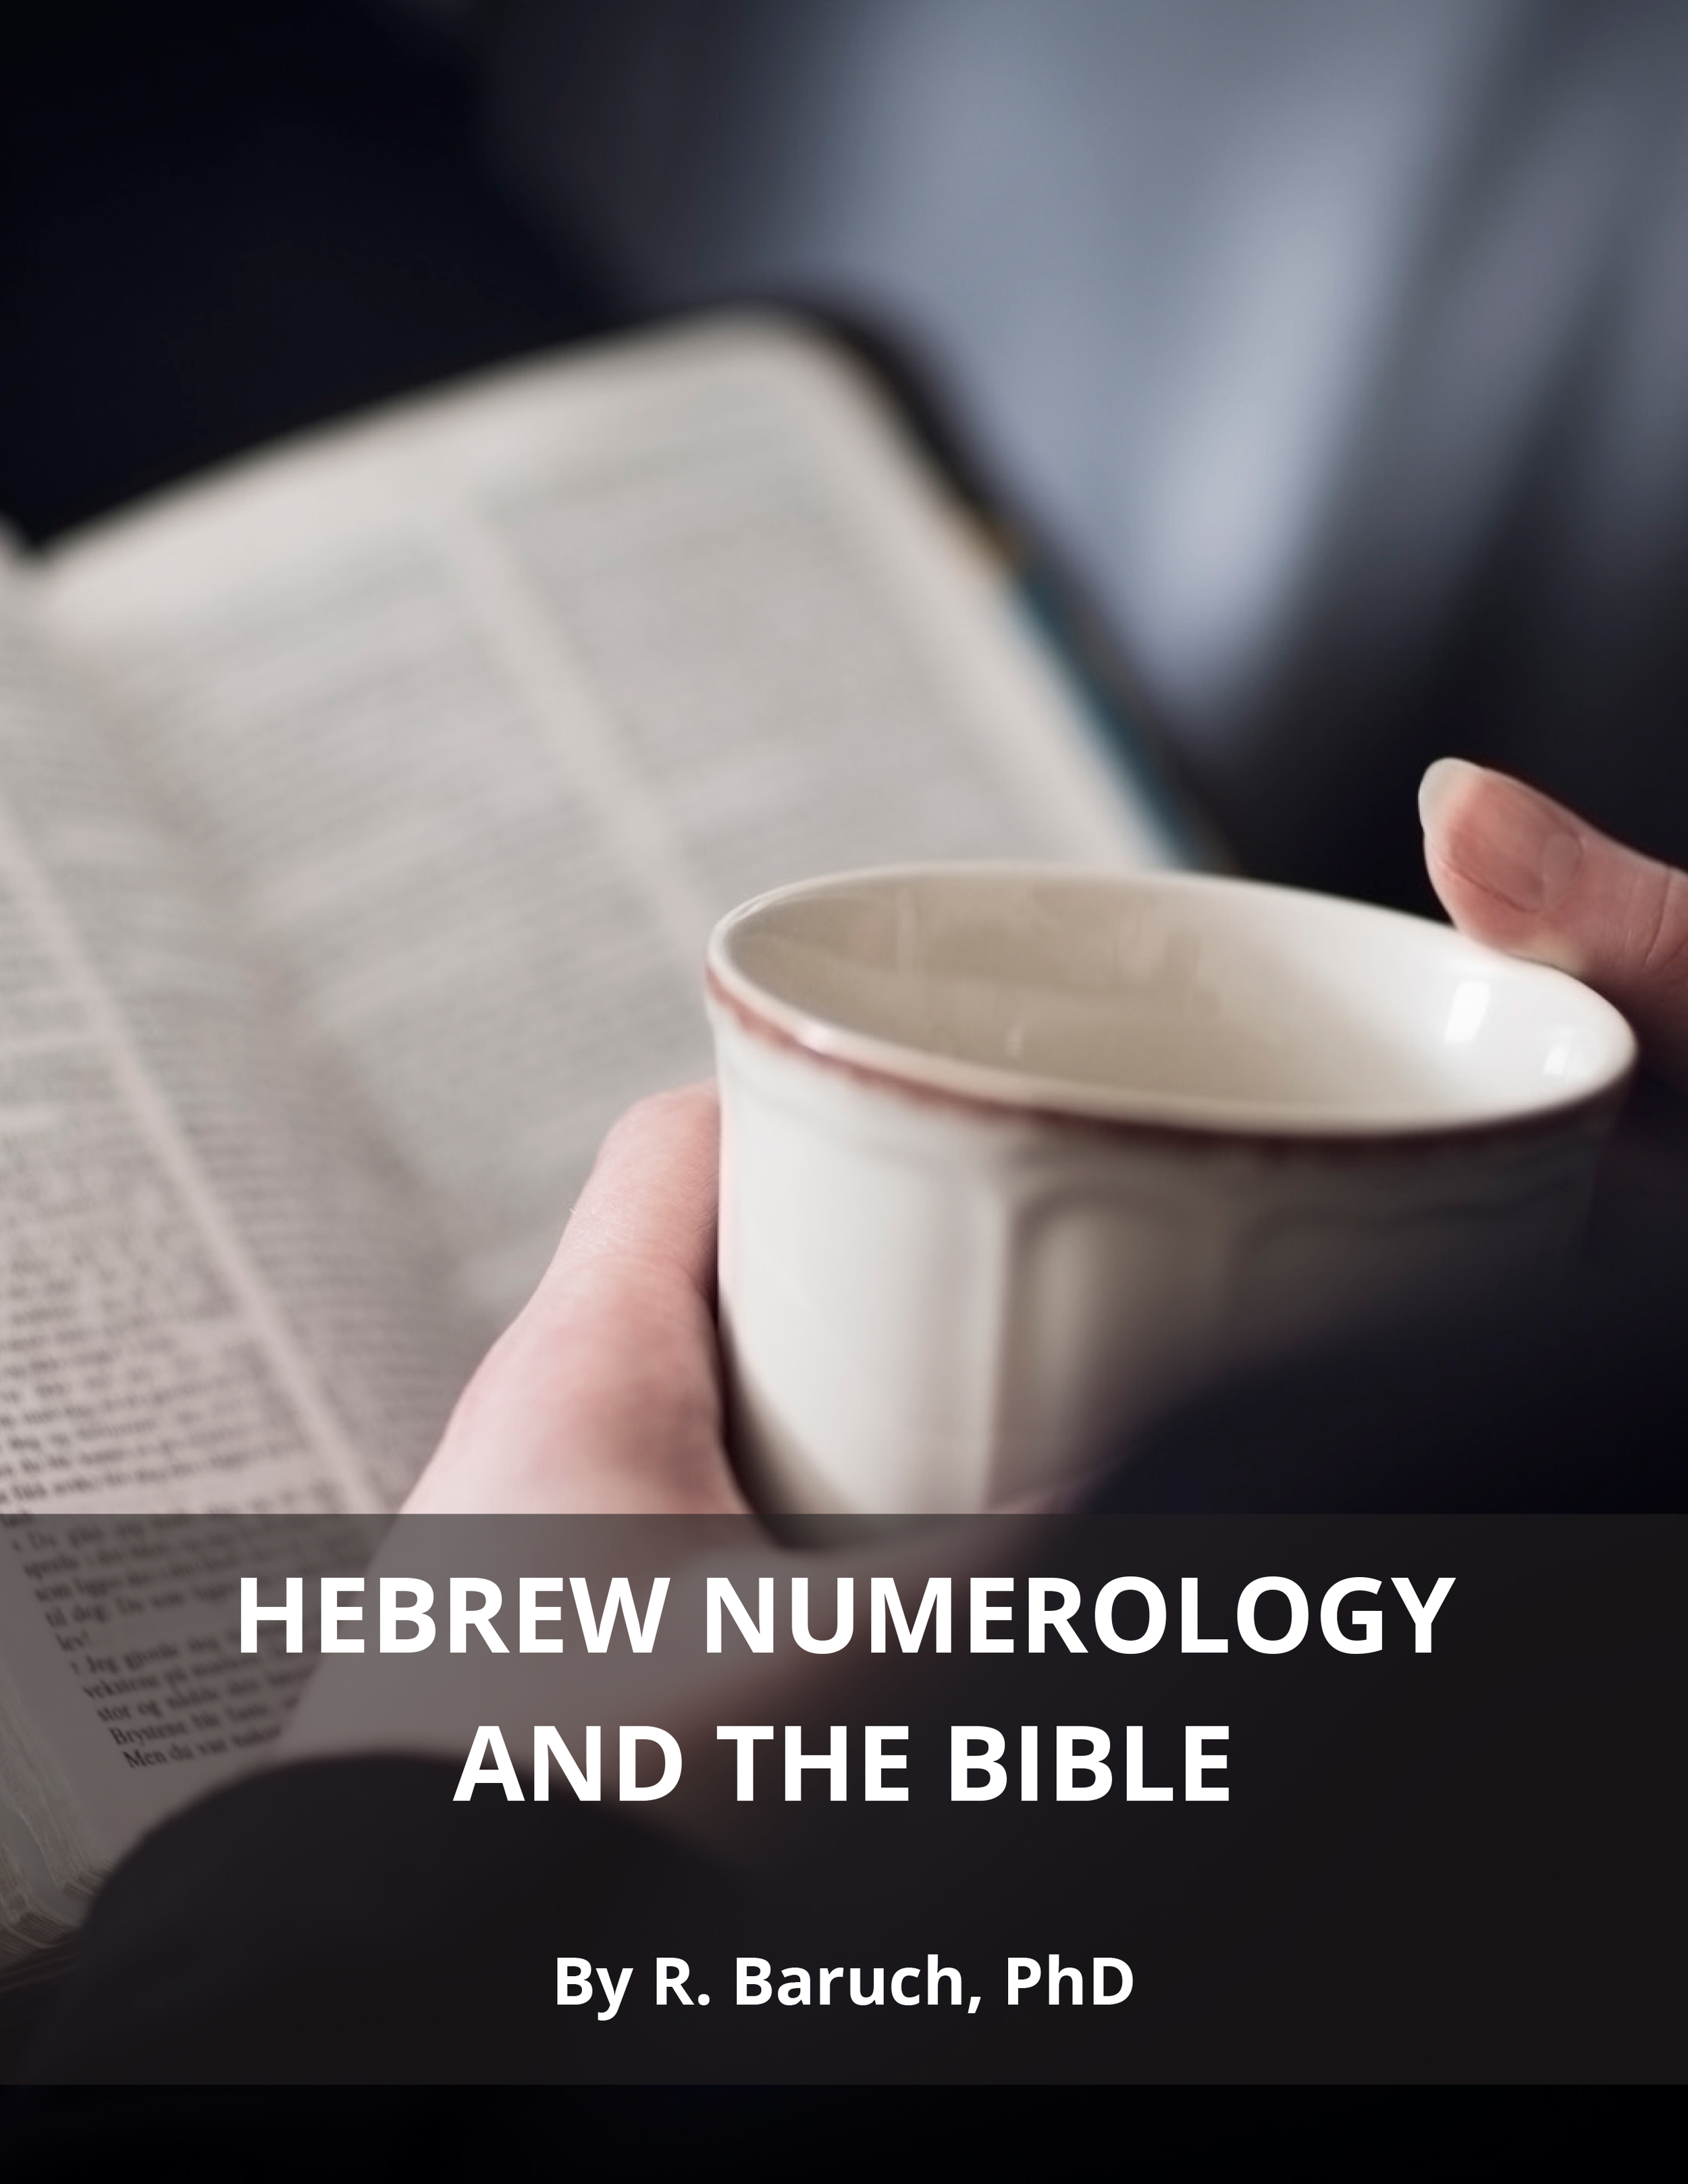 Hebrew Numerology